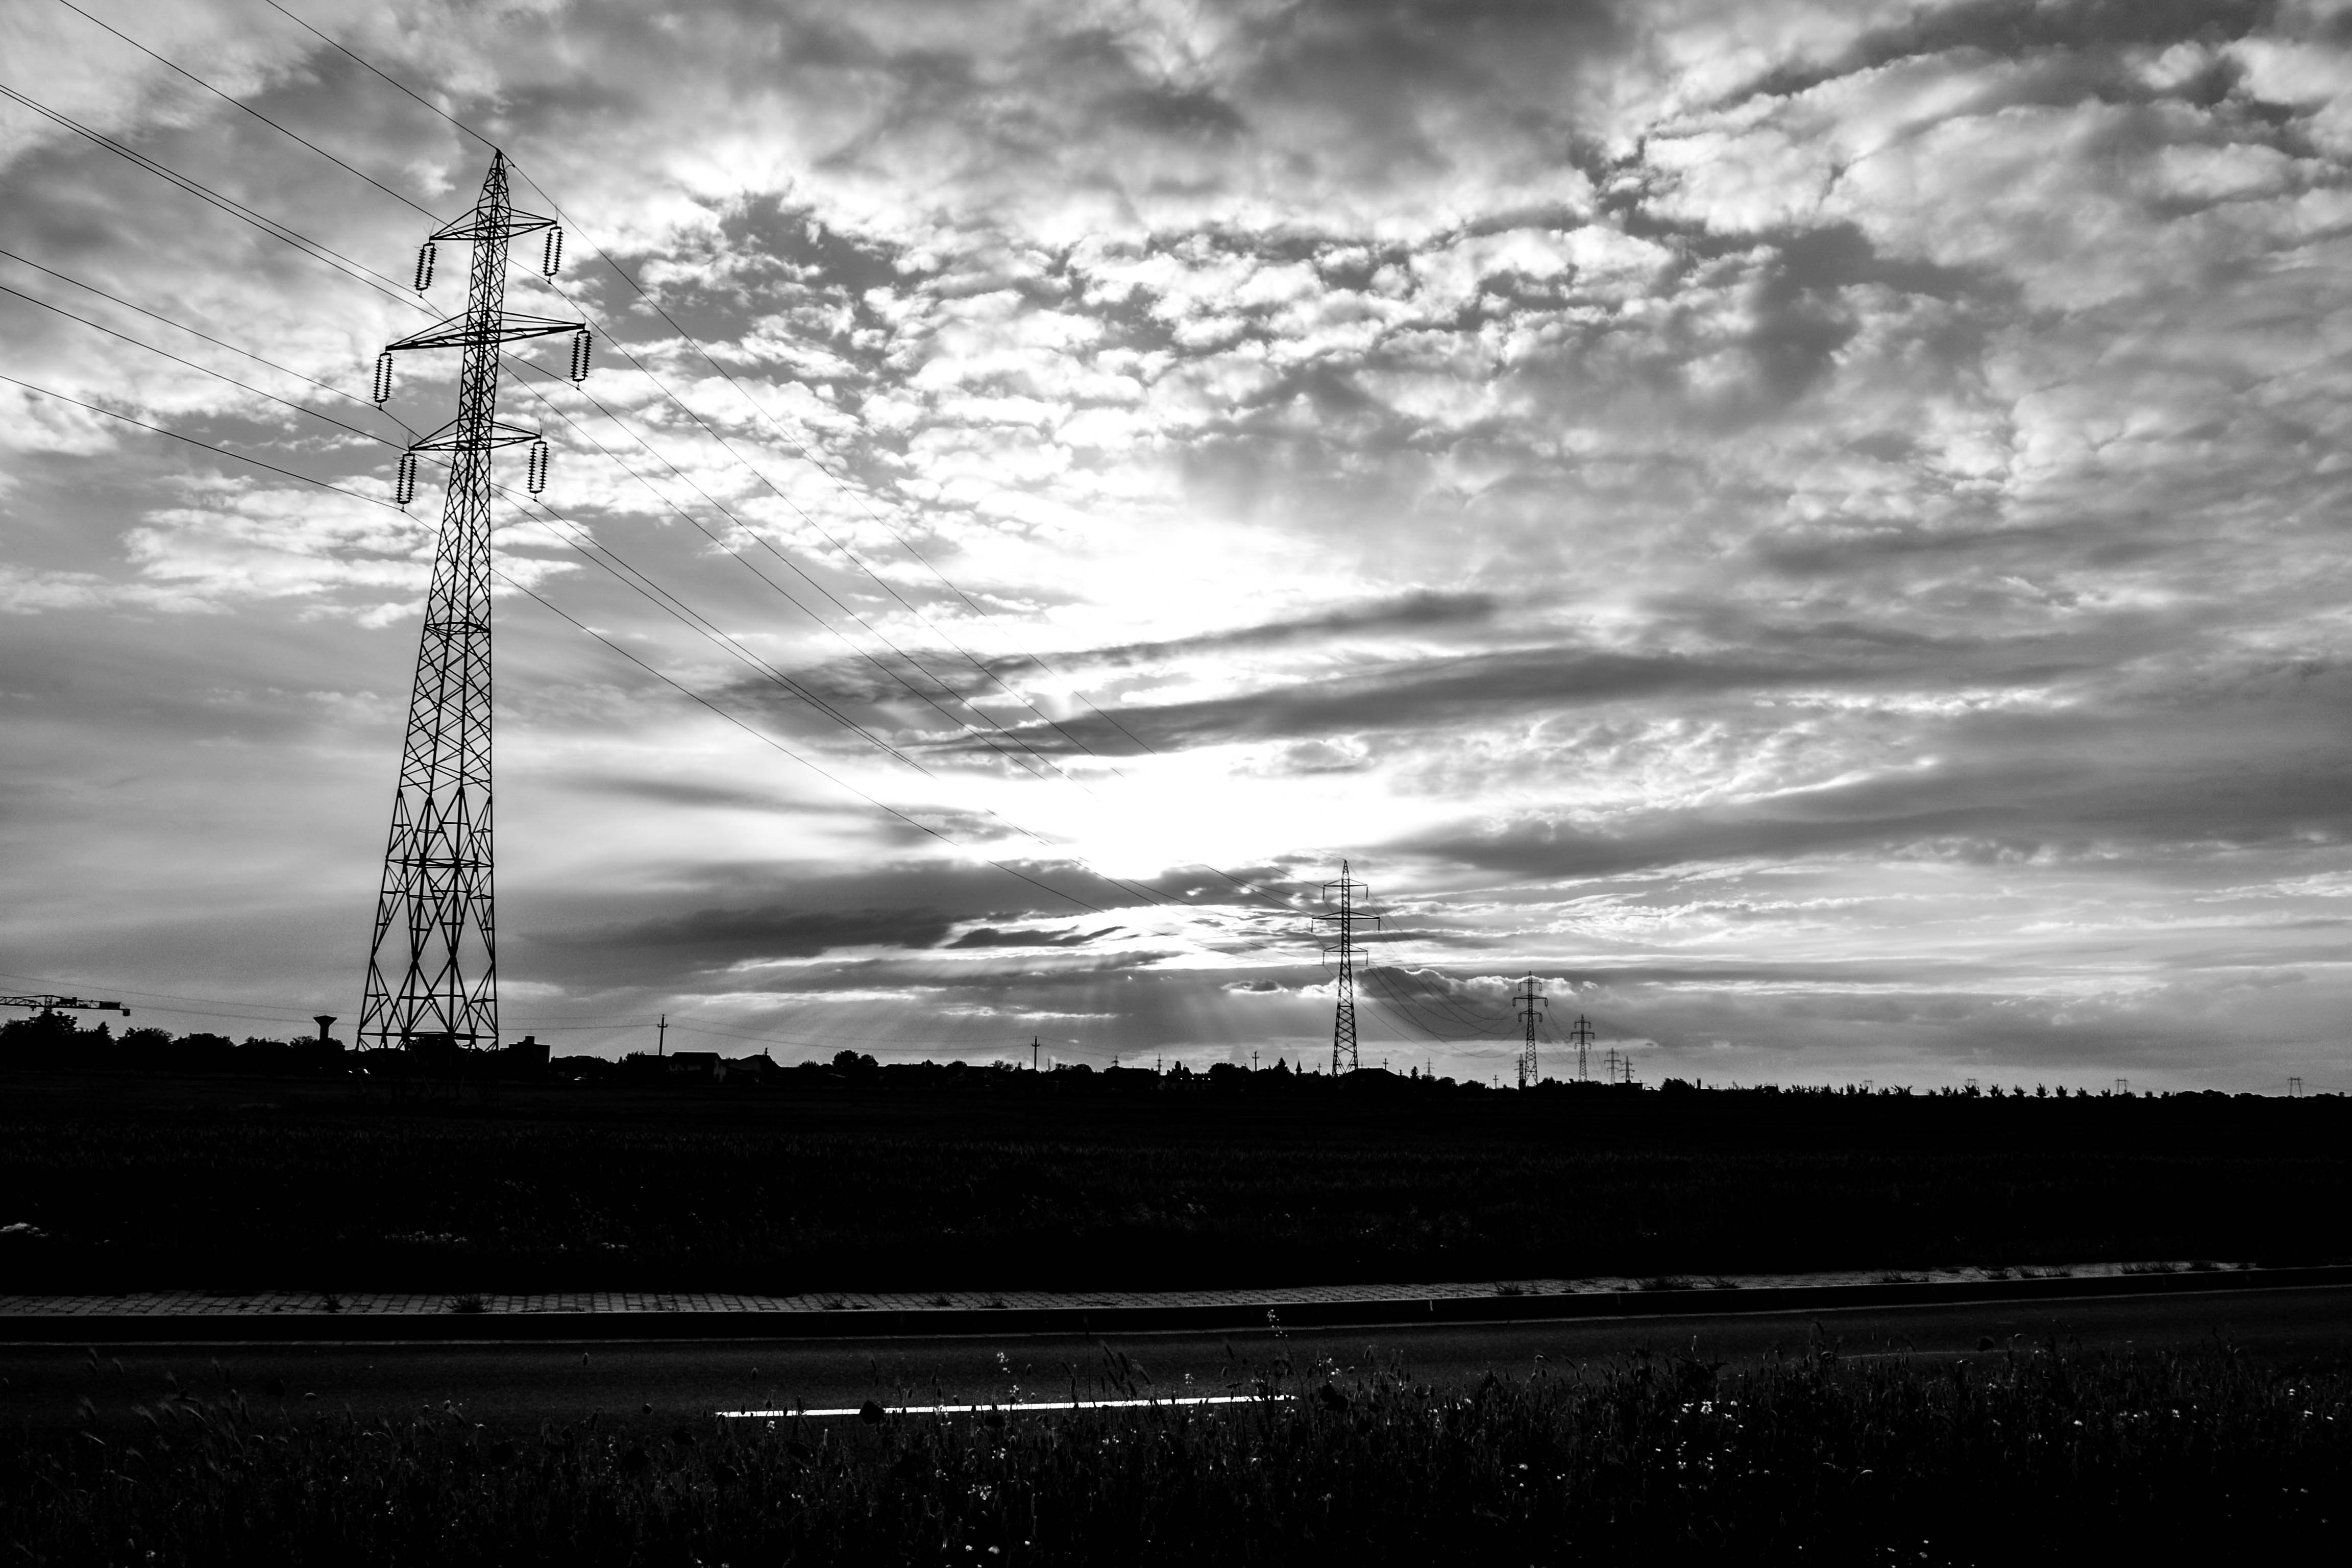 Grayscale Photography Of Transmission Towers Free Stock Photo